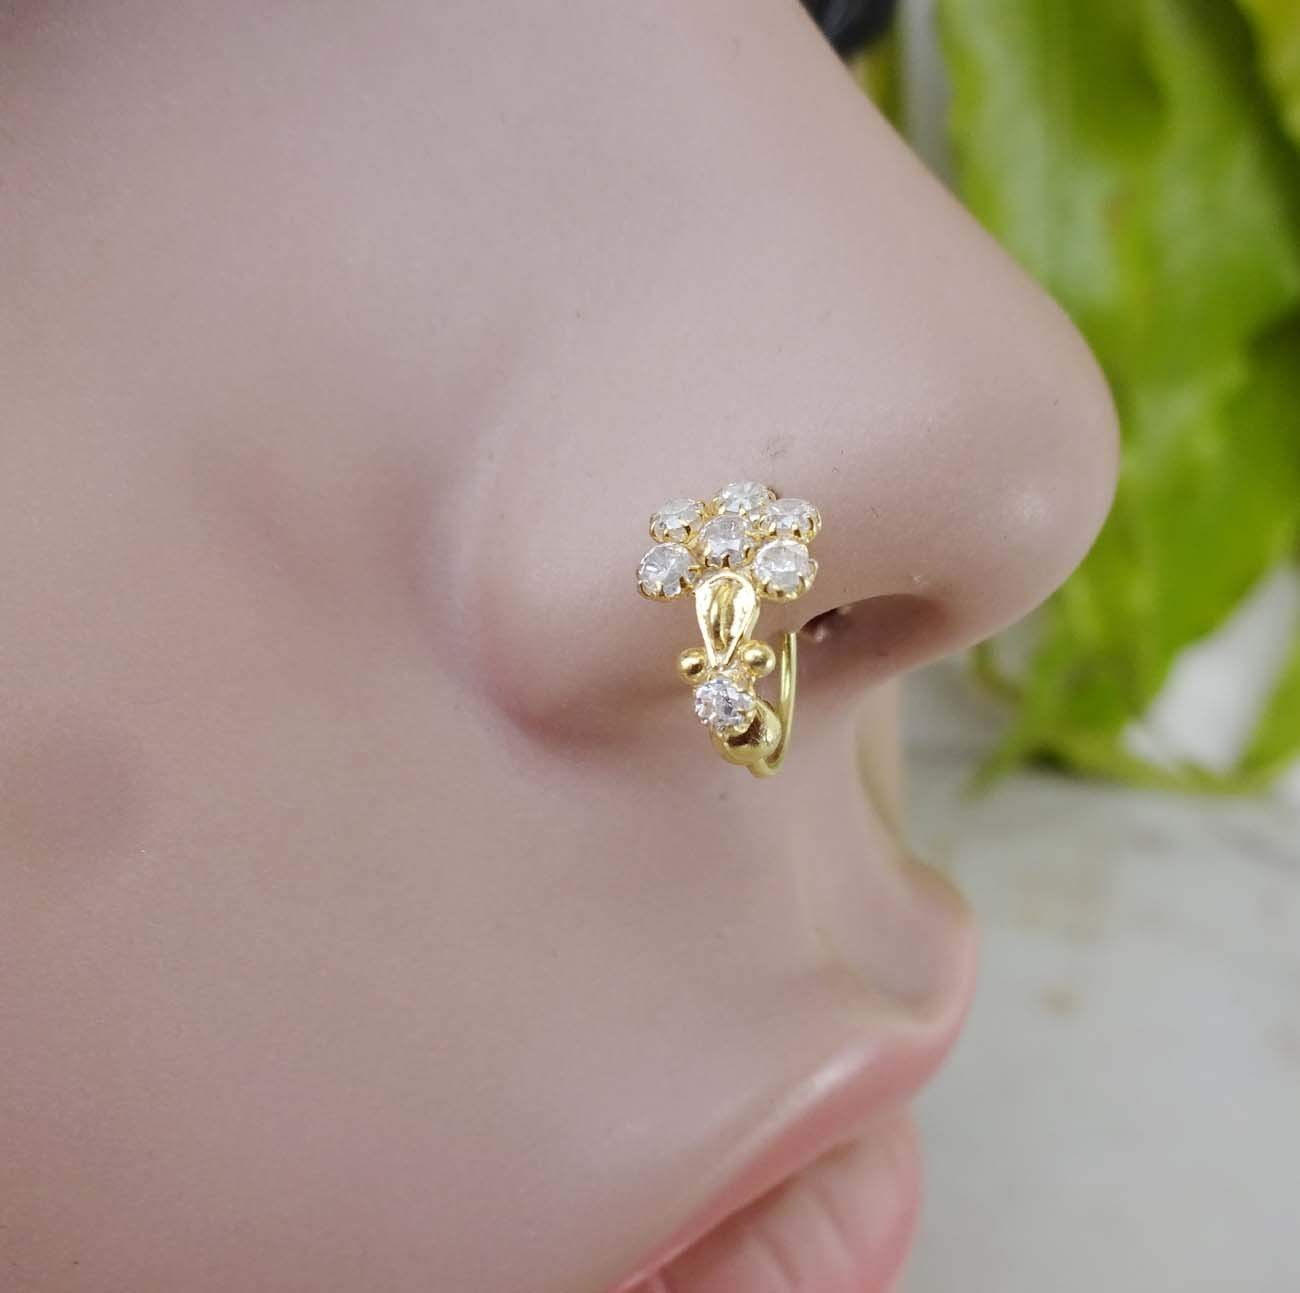 Monroe Piercing,CZ Clear Nose Ring,Gold Nose Ring,White Gold Nose Ring,Diamond Piercing,Indian Nose Jewelry,Indian Nose Ring,Indian Gold Piercing,Gold Nose Hoop,Nose Ring,Crystal Nose Ring(TEJ599)